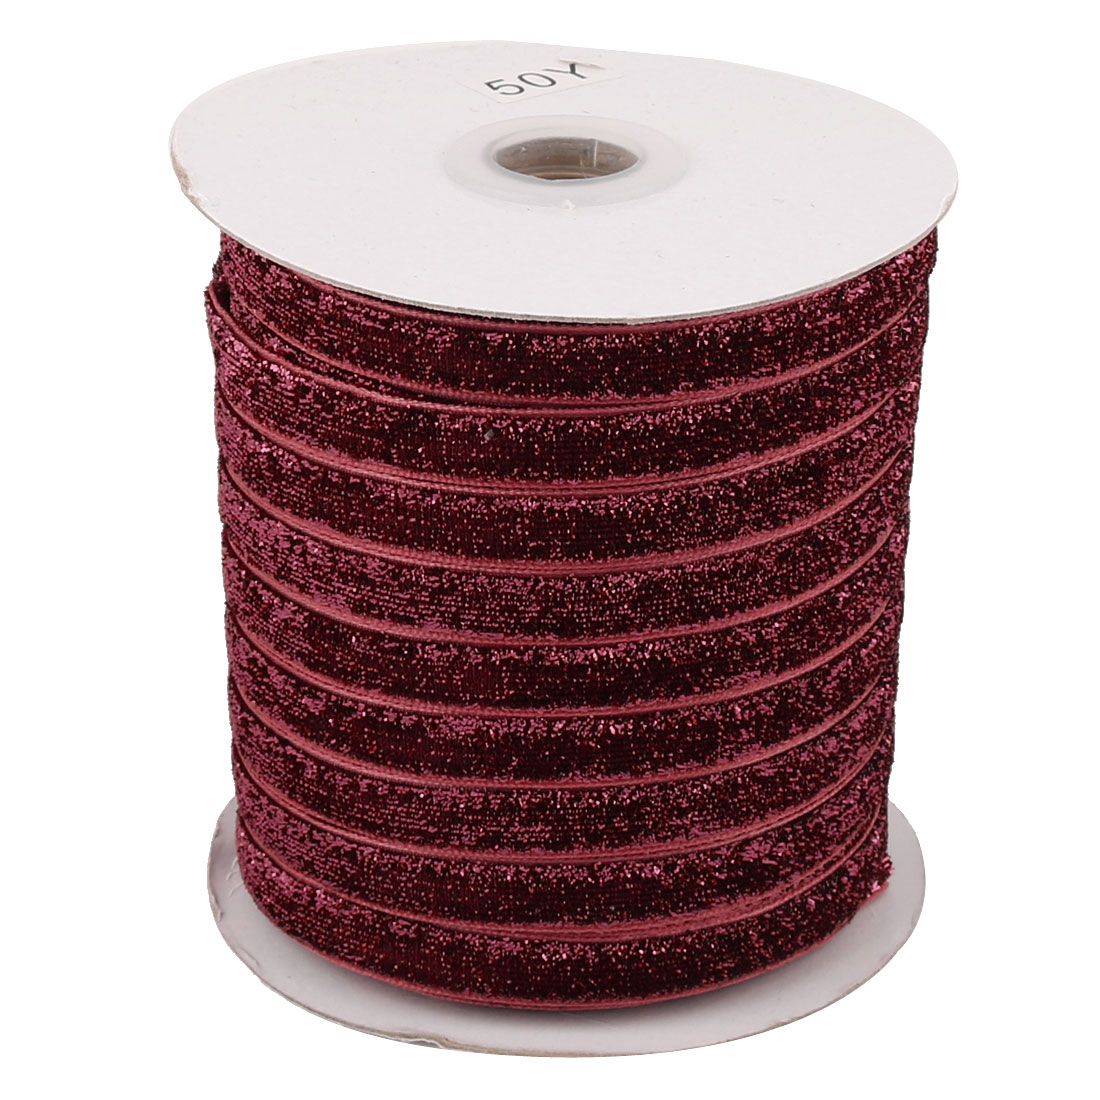 Festival Decoration Velvet Bling Ribbon DIY Gift Headband Dark Red 50 Yard 1cm Width